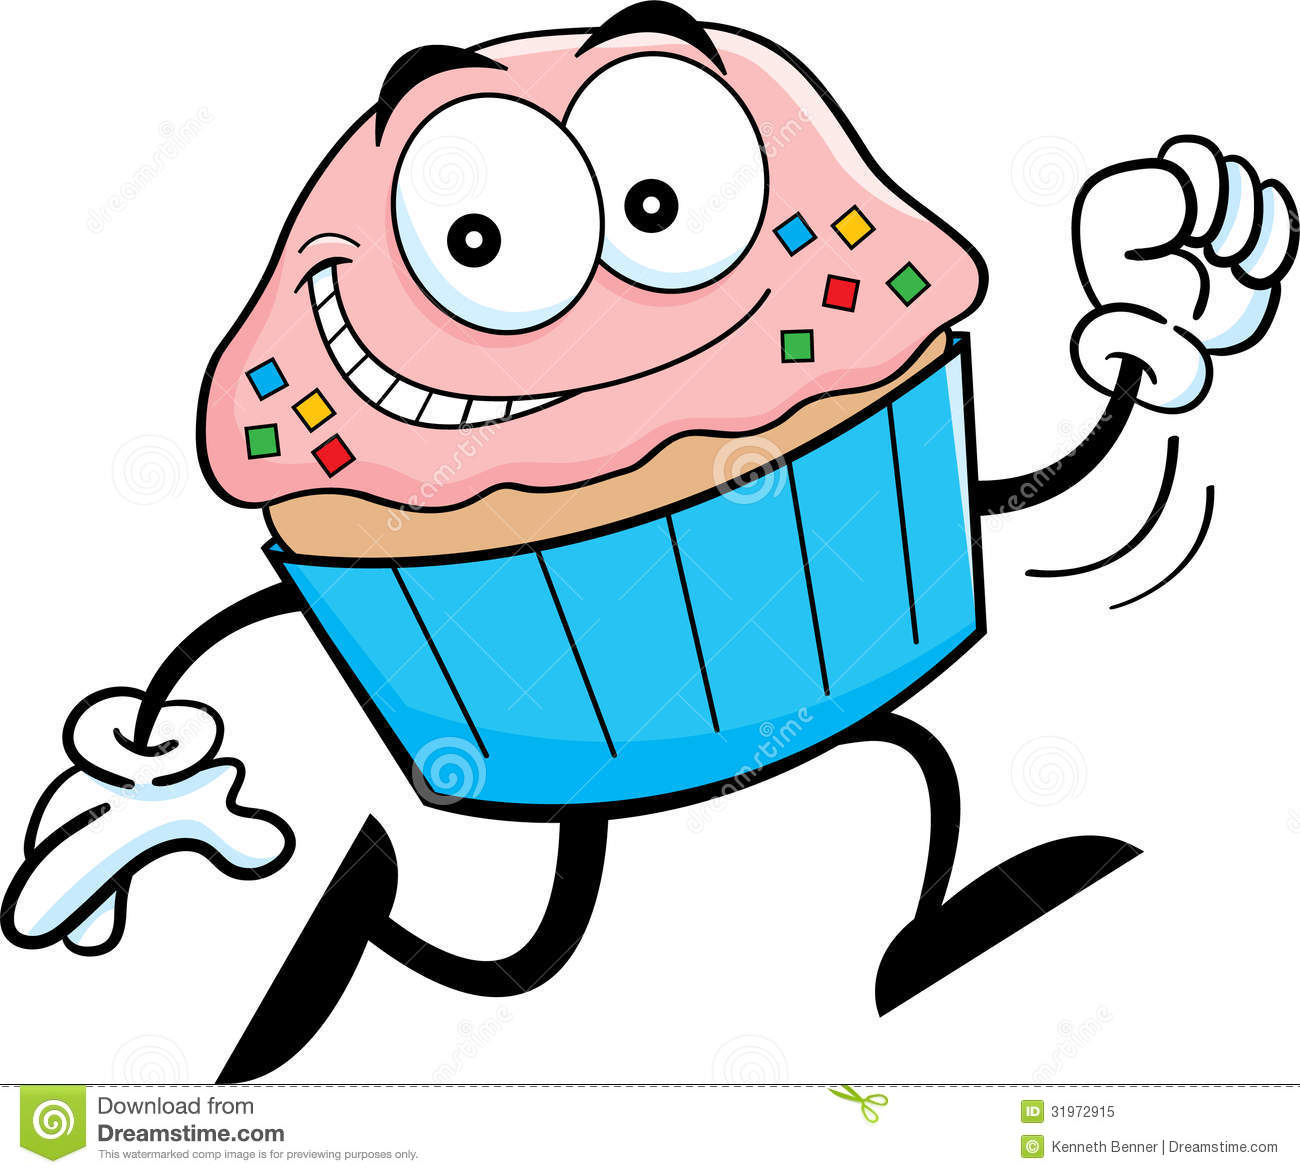 cartoon illustration of a running cupcake mr no pr no 2 1696 1No Running Cartoon